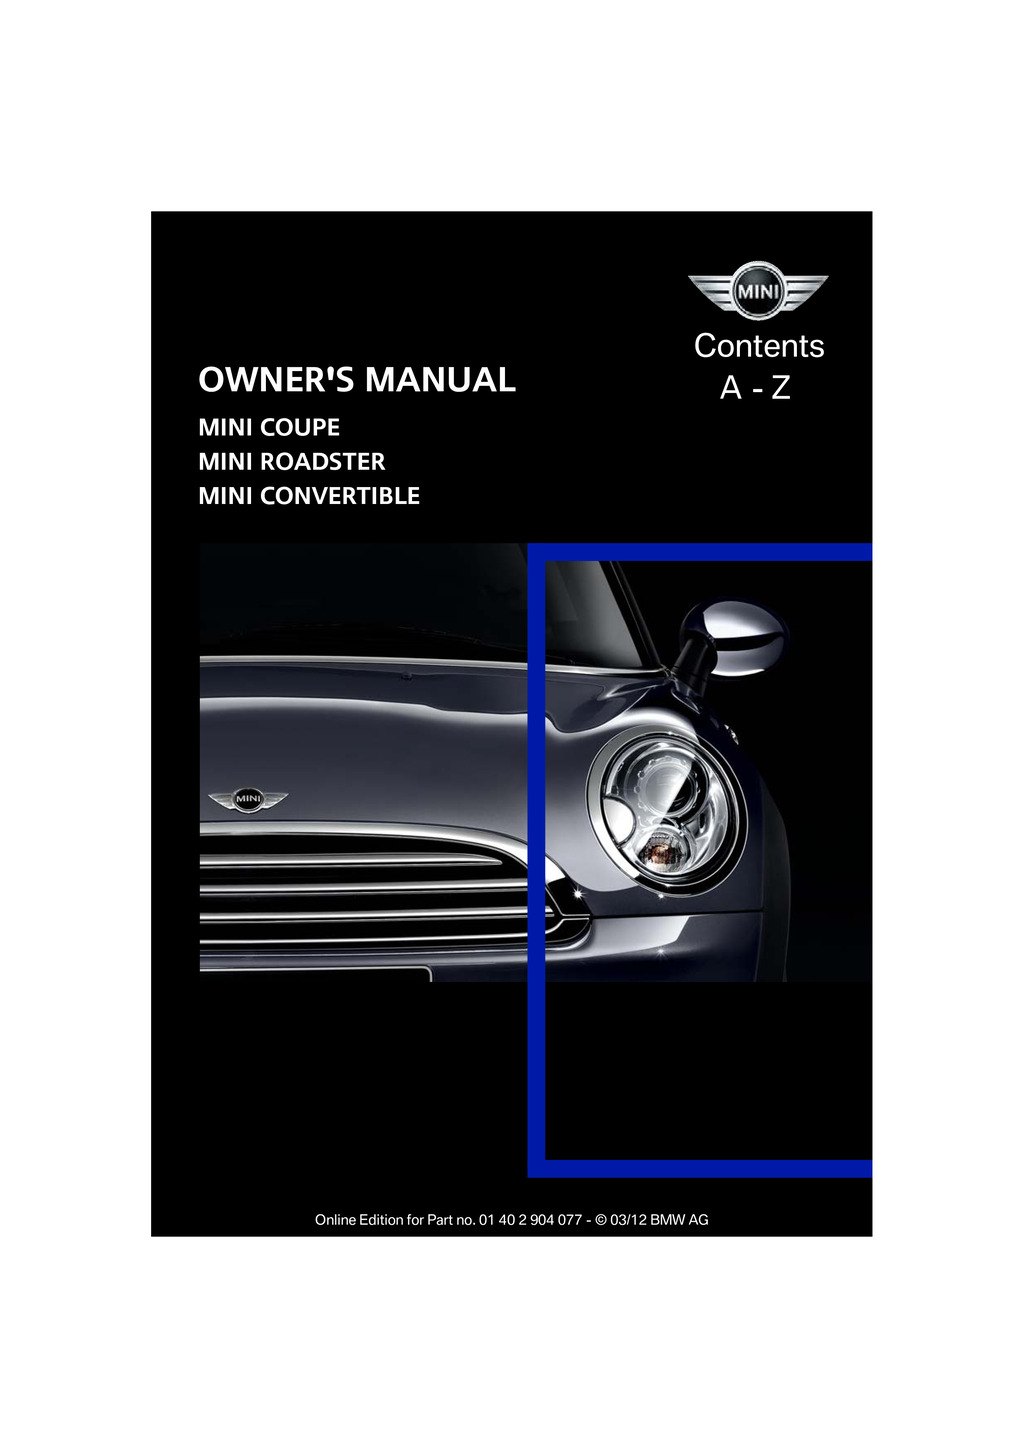 2012 Mini Coupe Roadster Convertible owners manual